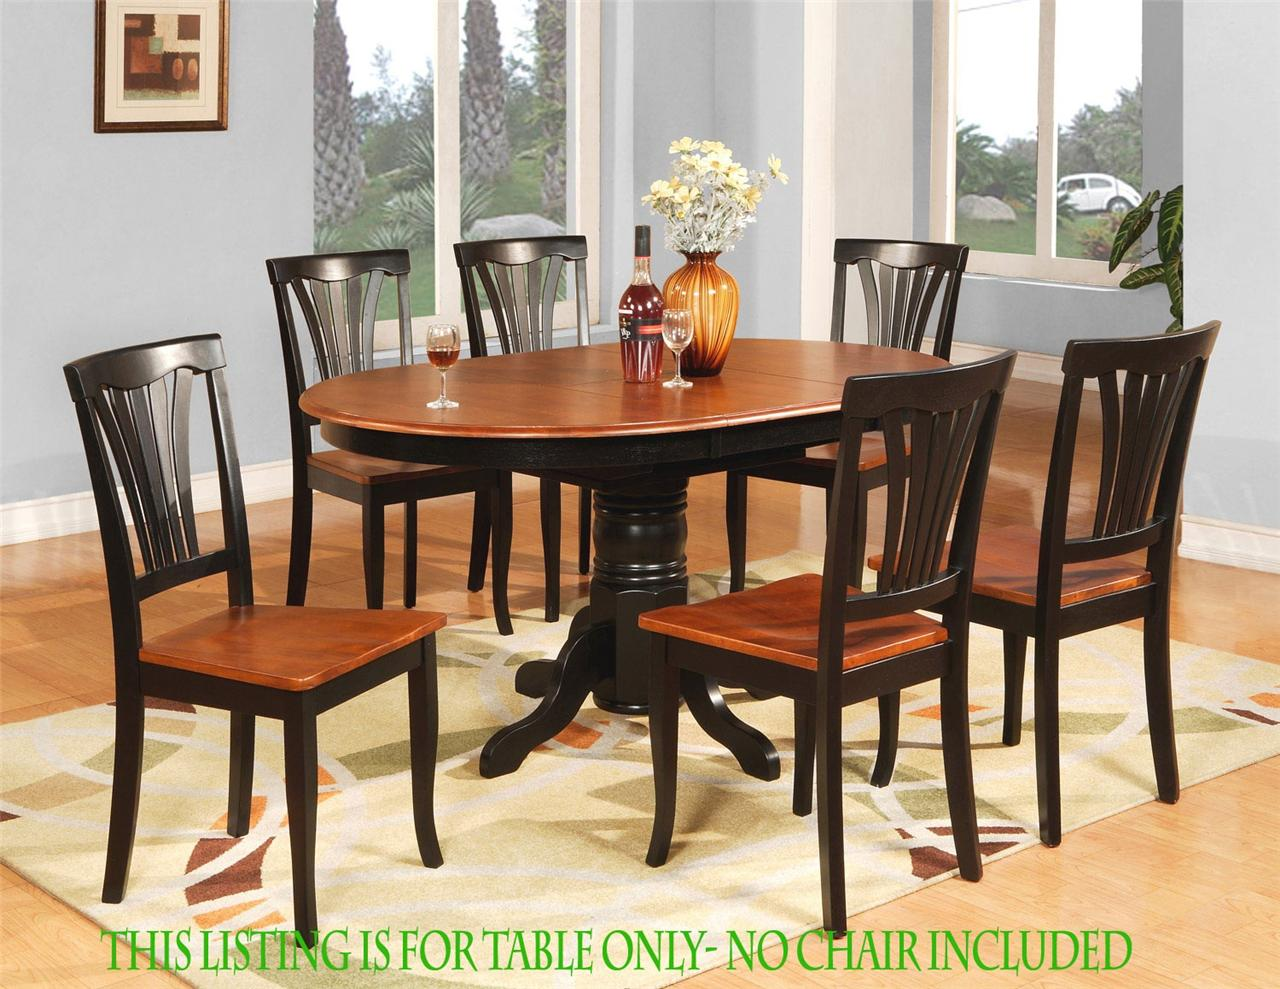 kitchen table and chairs sets used cabinets craigslist oval dinette dining room only 42 quotx 60 quot with